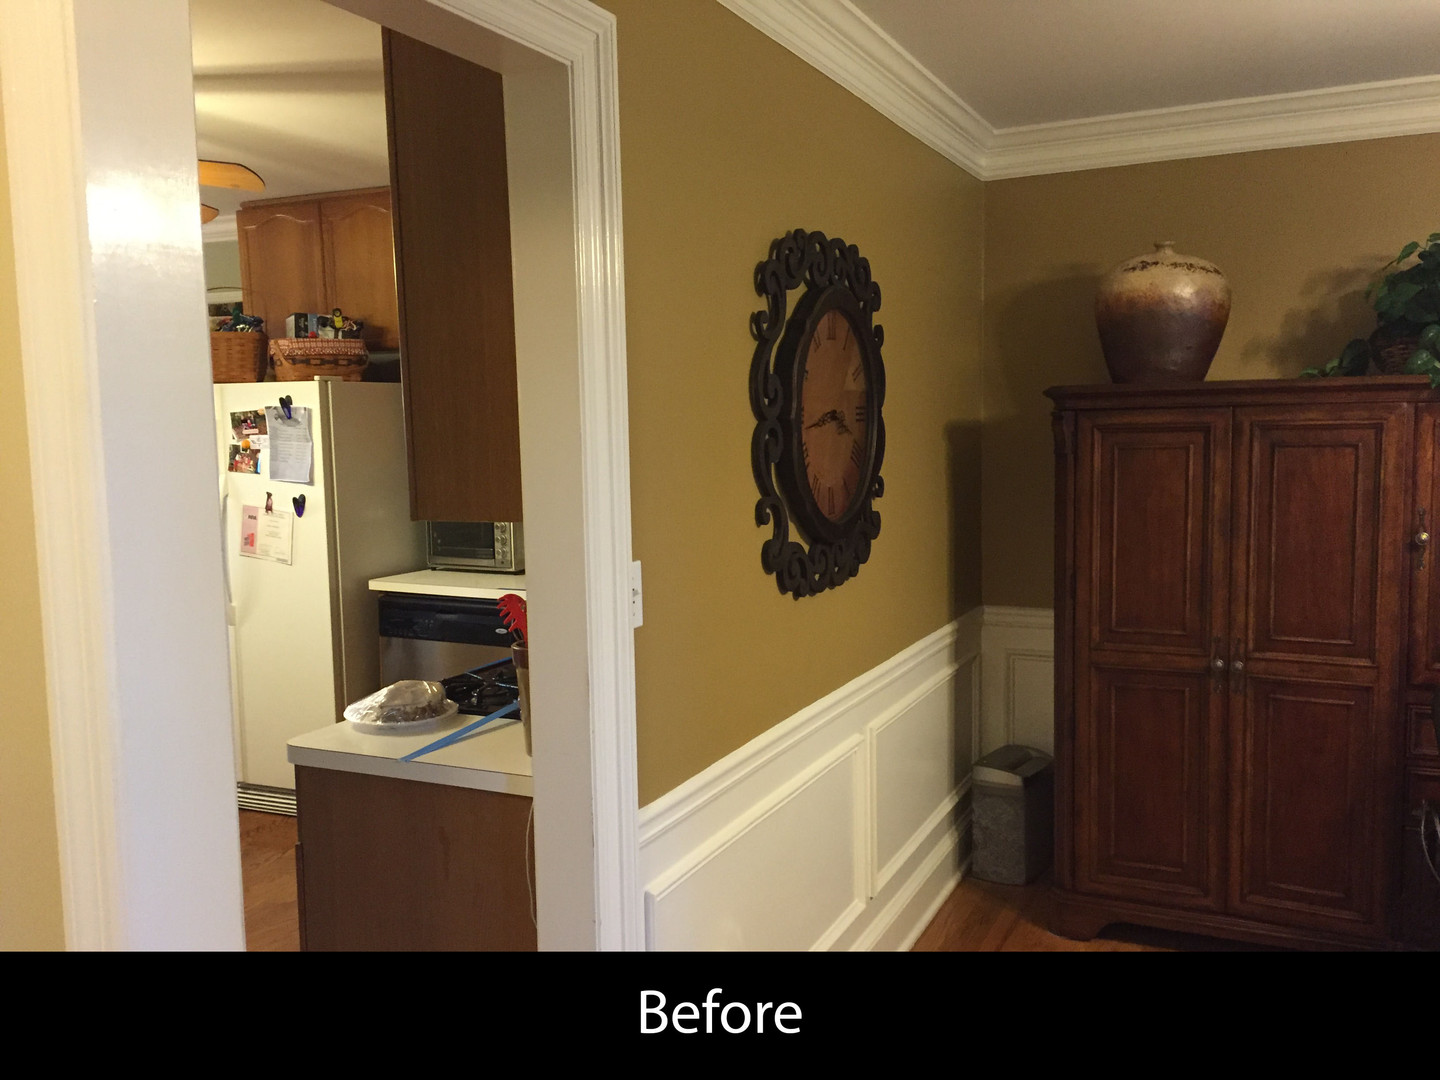 Room Renovation - Before